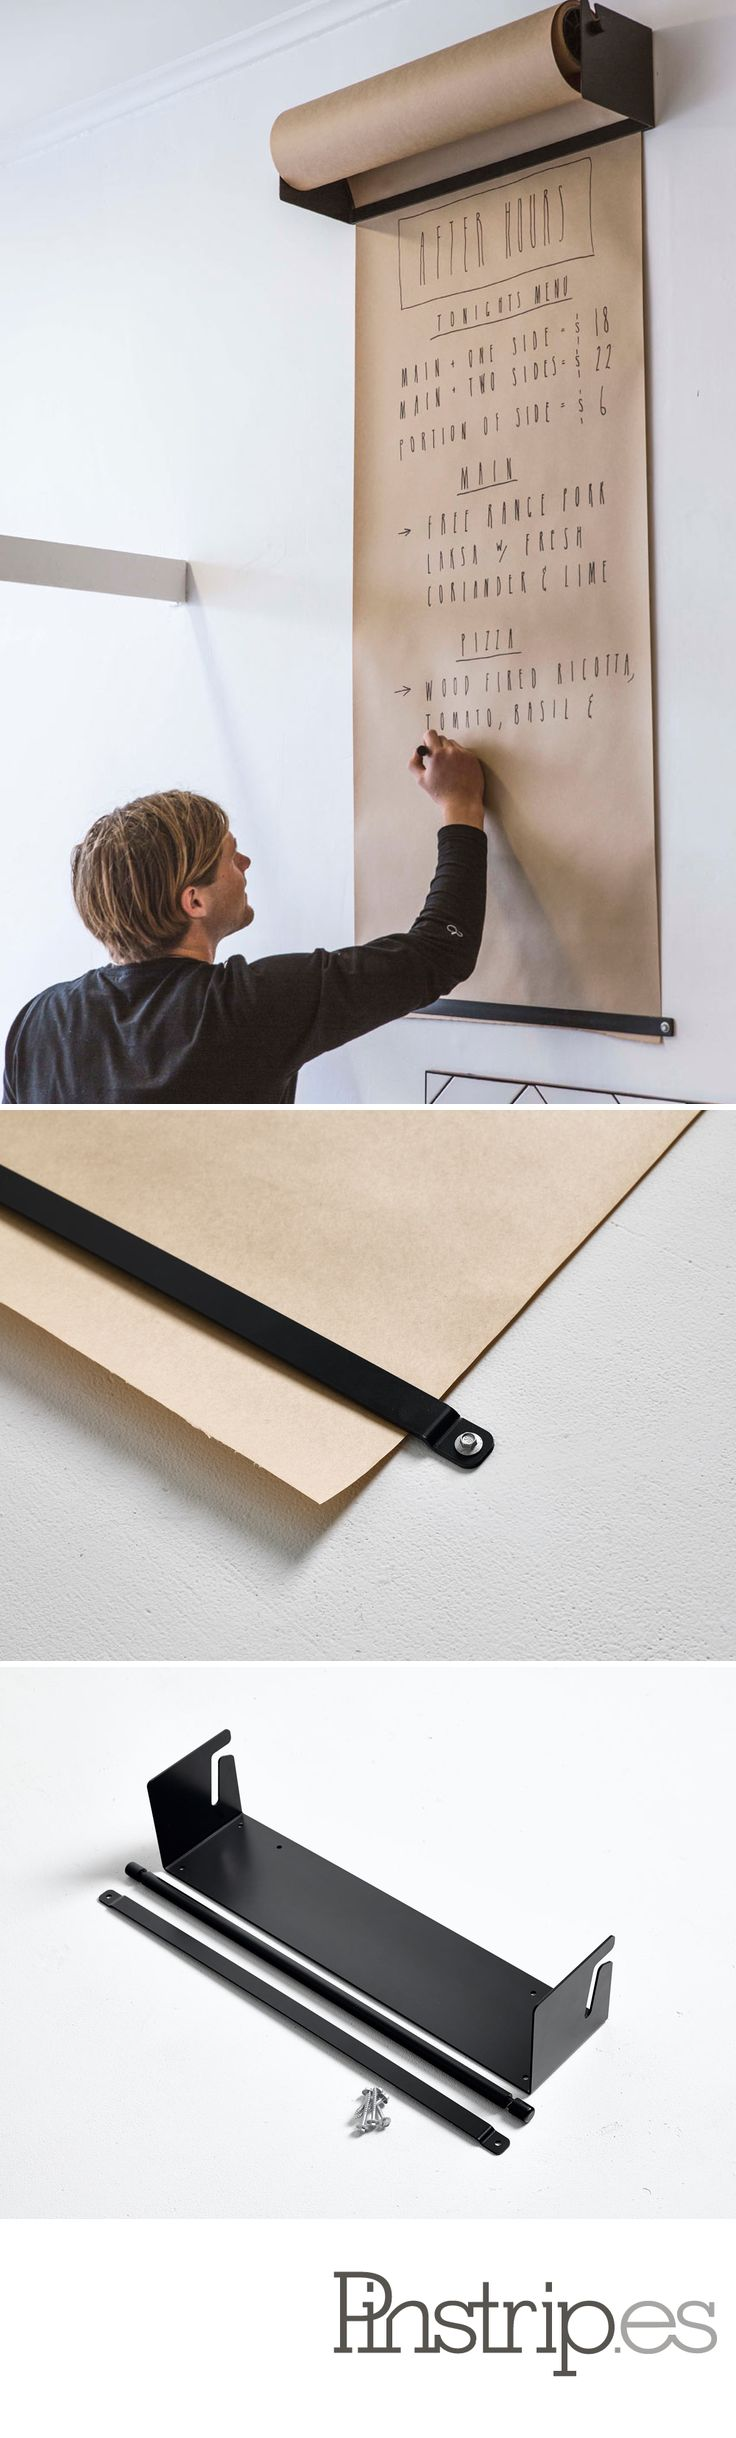 Awesome.  WALL-MOUNTED KRAFT PAPER ROLL DISPENSER - cleaner than chalkboard, if less *green* via @designmilk